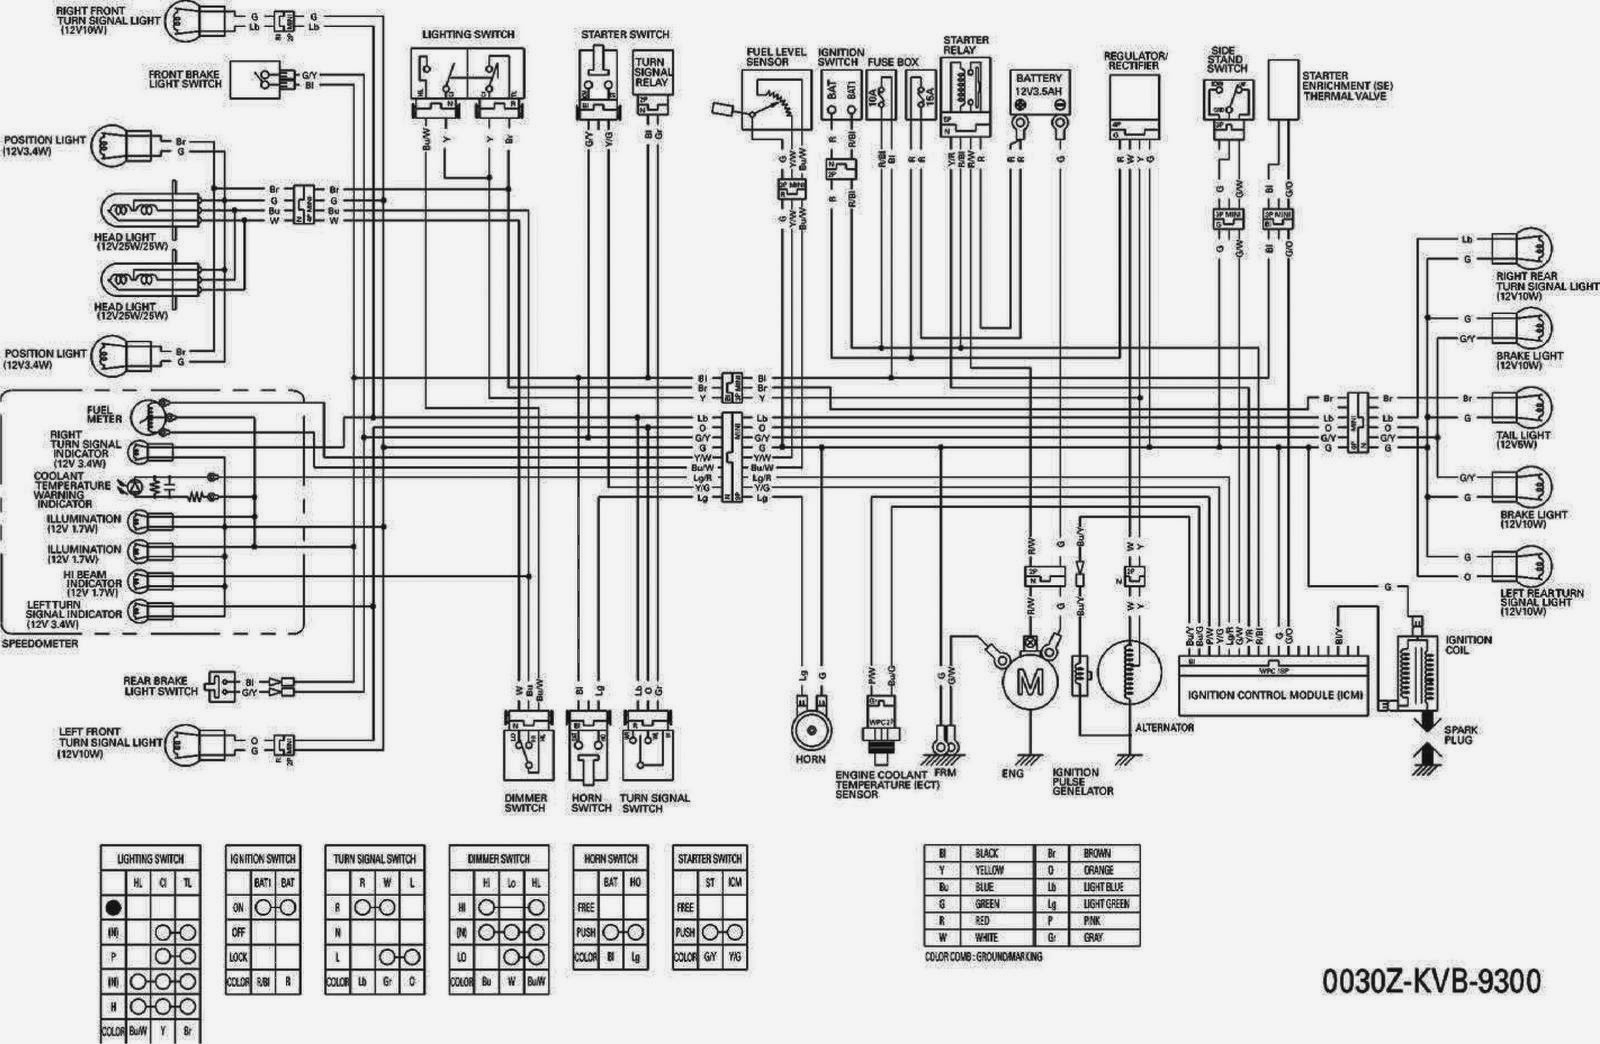 Yamaha 350 Quad Wiring Diagram